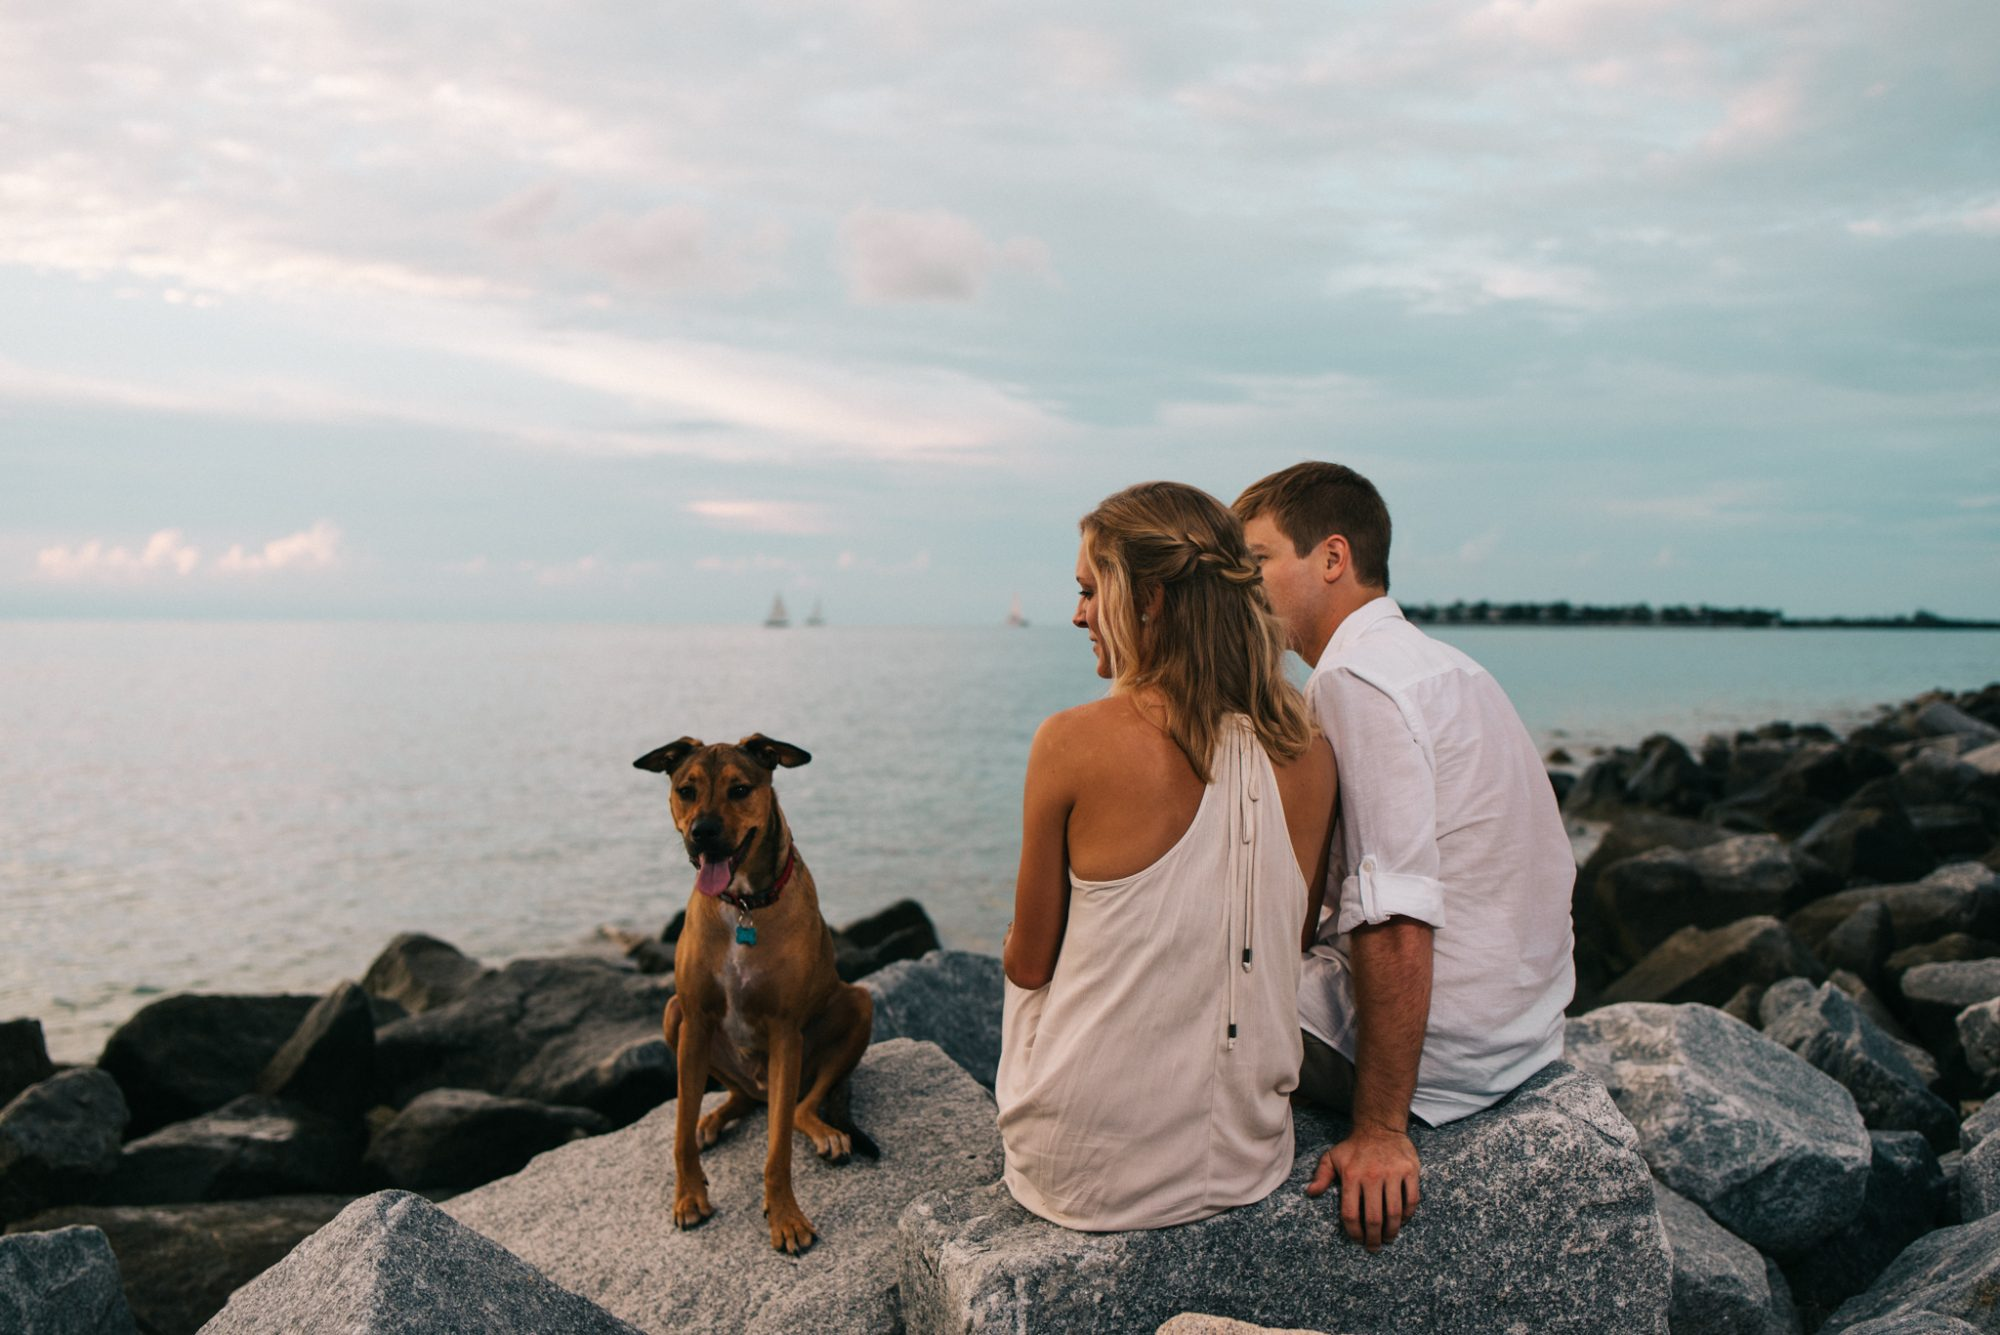 Shelby Jake Engagement Photos 46 - Shelby & Jake - Key West Wedding Photographer - Fort Zachary Taylor